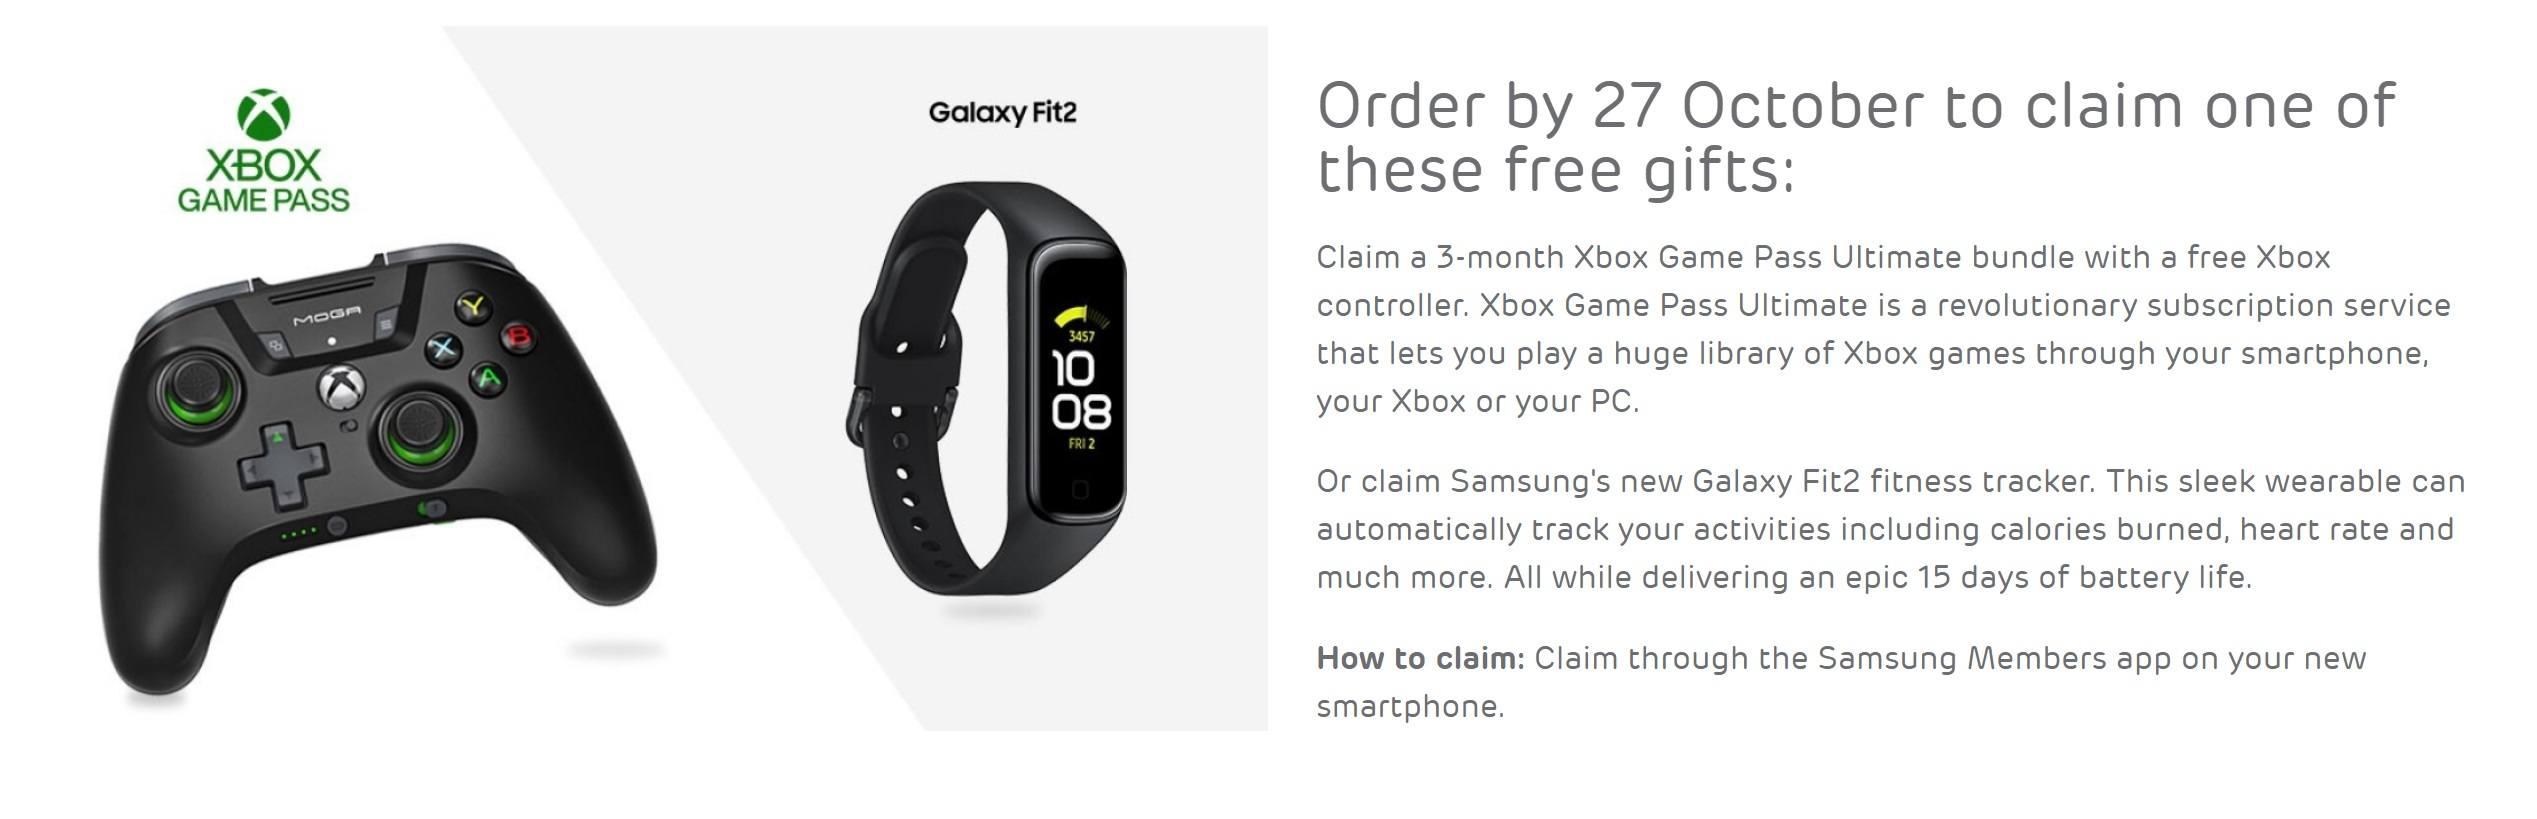 Claim 3 months free XBox Game Pass Ultimate with a free MOGA controller or a free Galaxy Fit2 fitness tracker with Samsung S20 FE (Fan Edition) contract deals